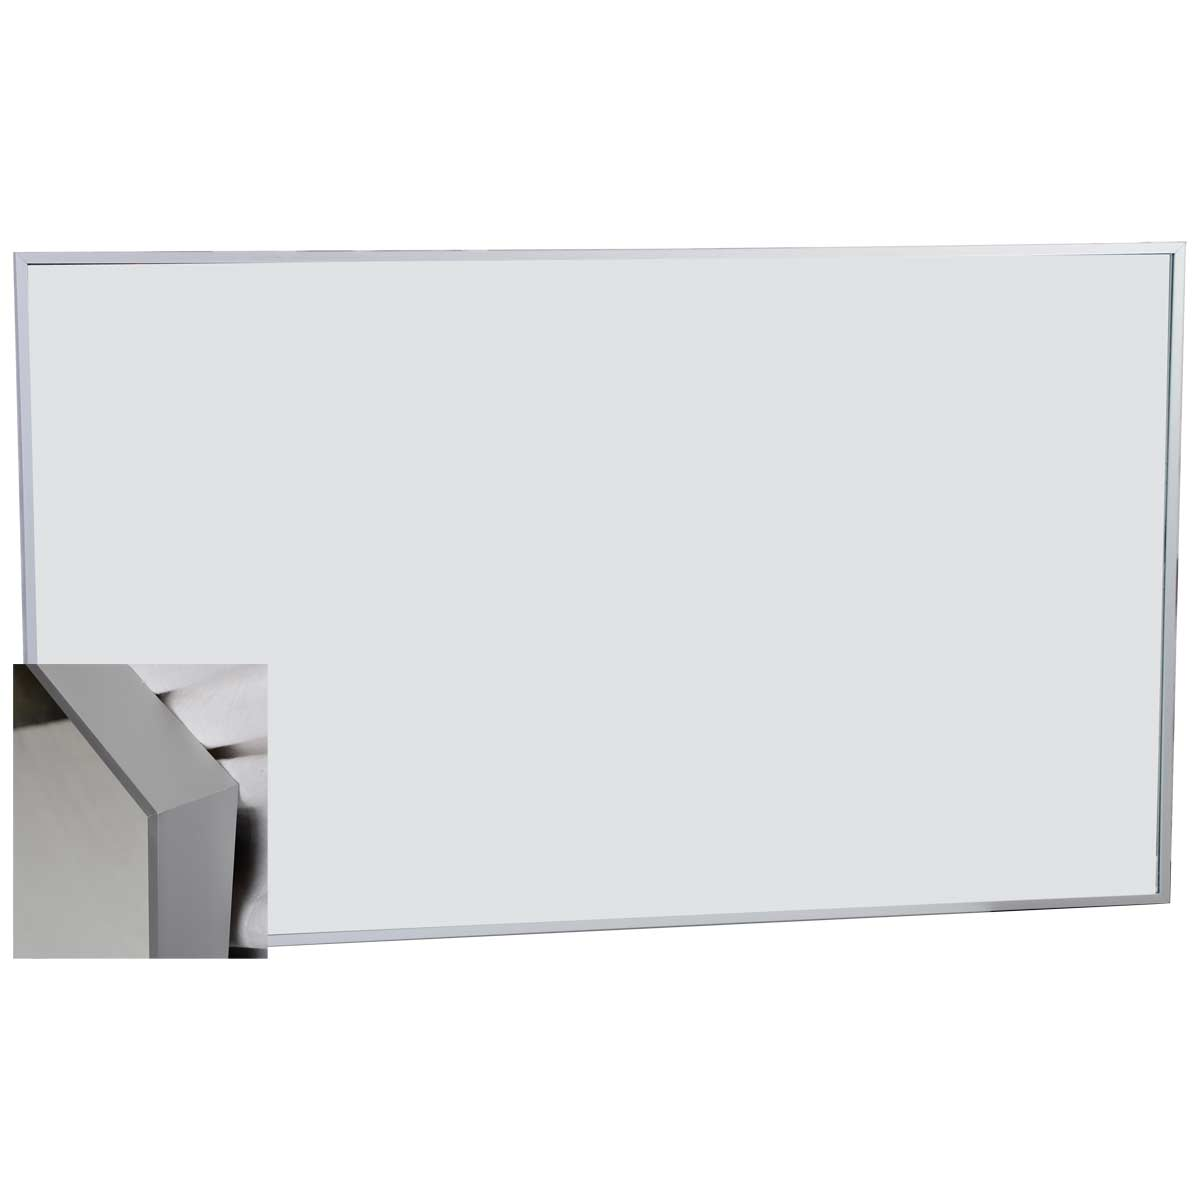 Camino 595 inch modern double vanity set wall mount walnut tn 59 metal framed wall mirror amipublicfo Choice Image